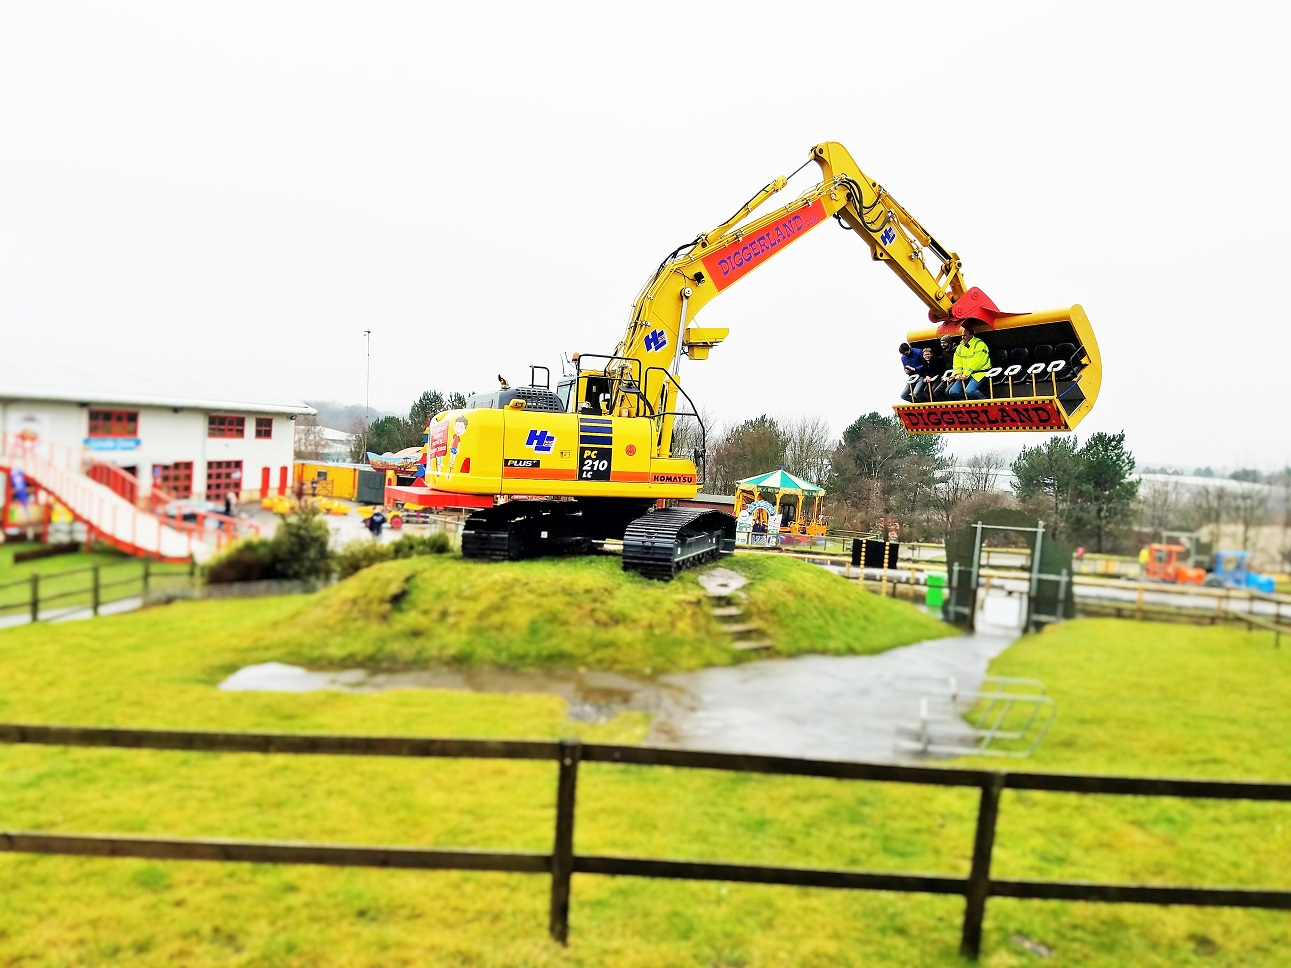 Diggerland in the rain - fast ride called SpinDizzy